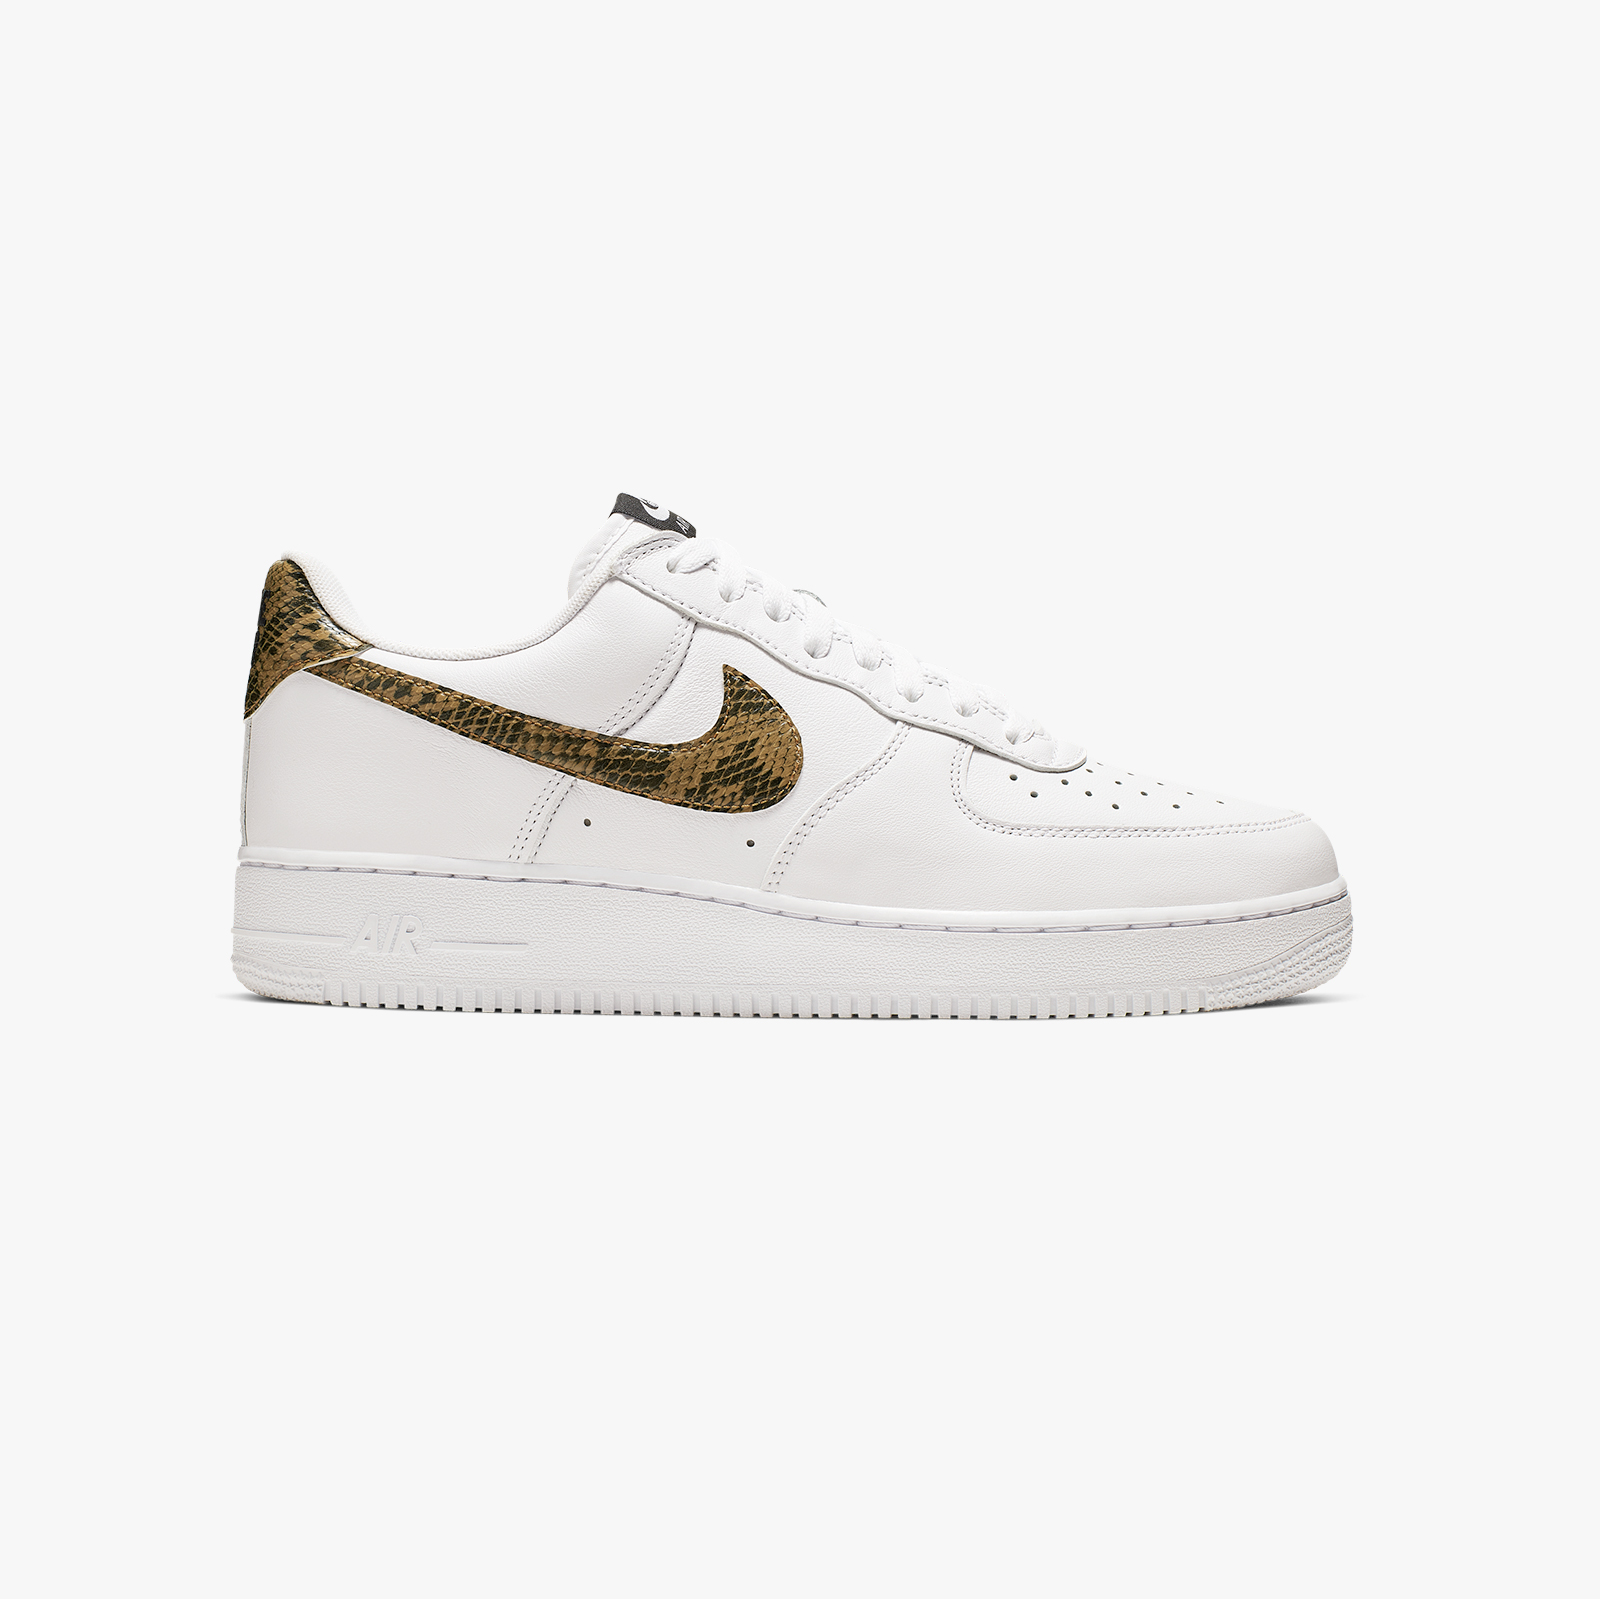 Nike Air Force 1 Low Retro Premium QS Ao1635 100